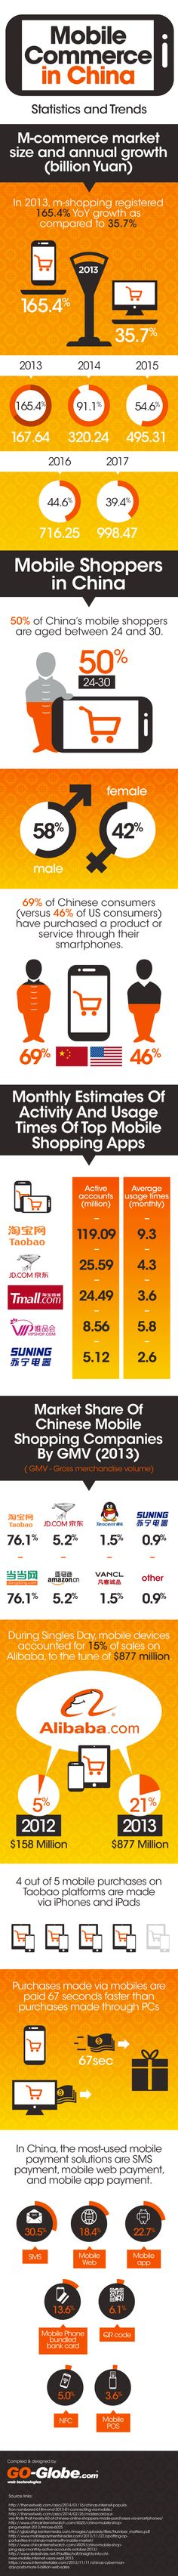 Mobile Commerce in China Stats and Trends   #infographic #MobileCommerce #China